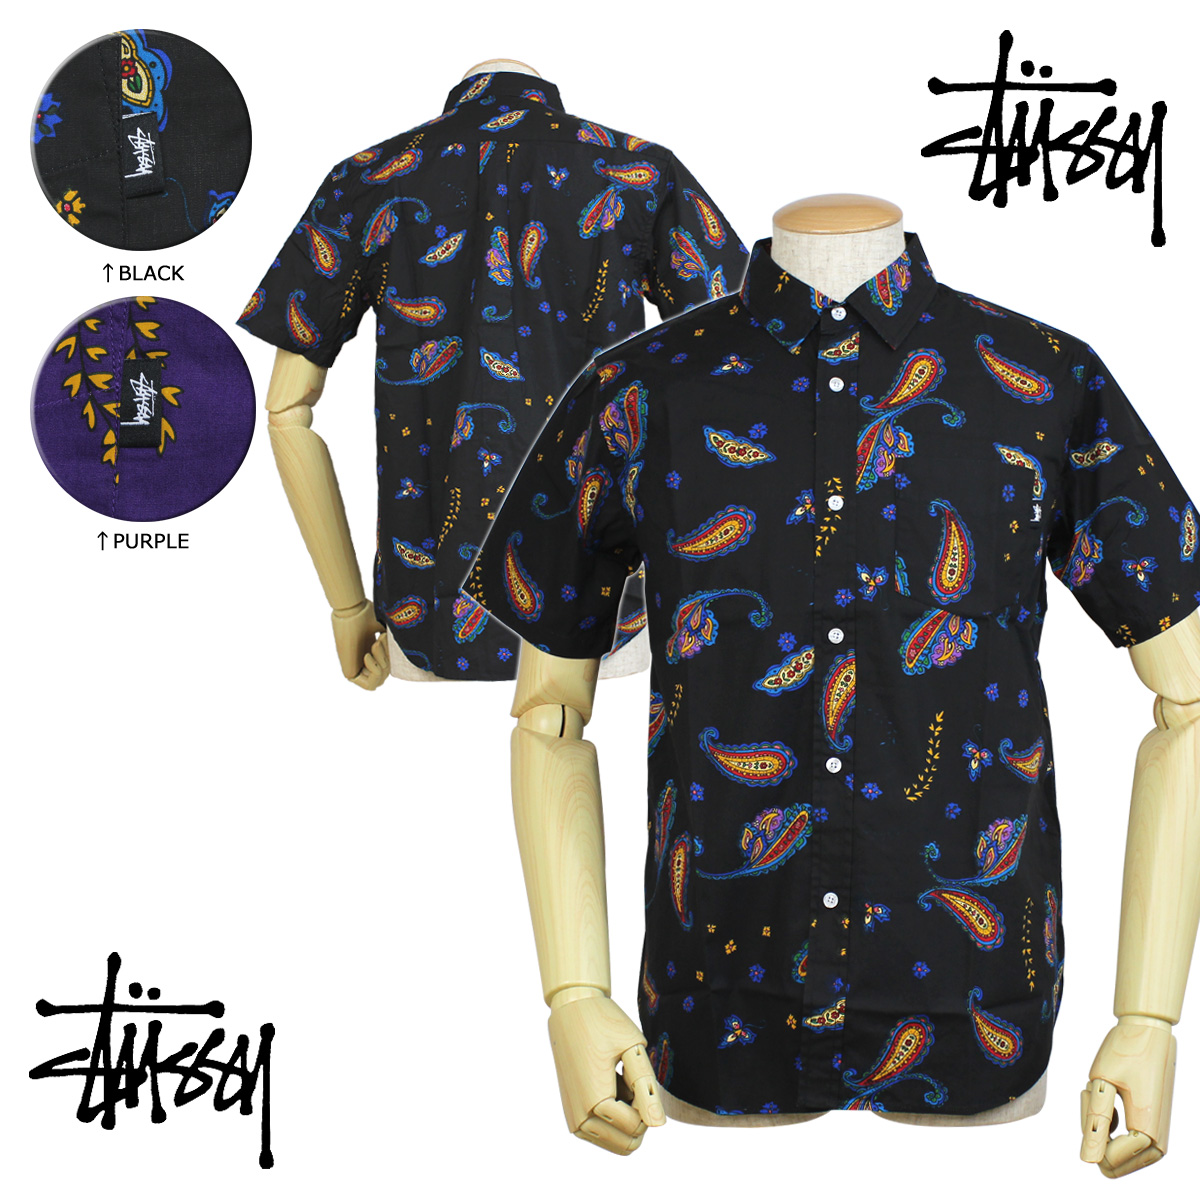 Sugar Online Shop  Stussy STUSSY mens shirt short sleeve button shirt with  PAISLEY SHIRT  8 19 new in stock   21d3acea28d